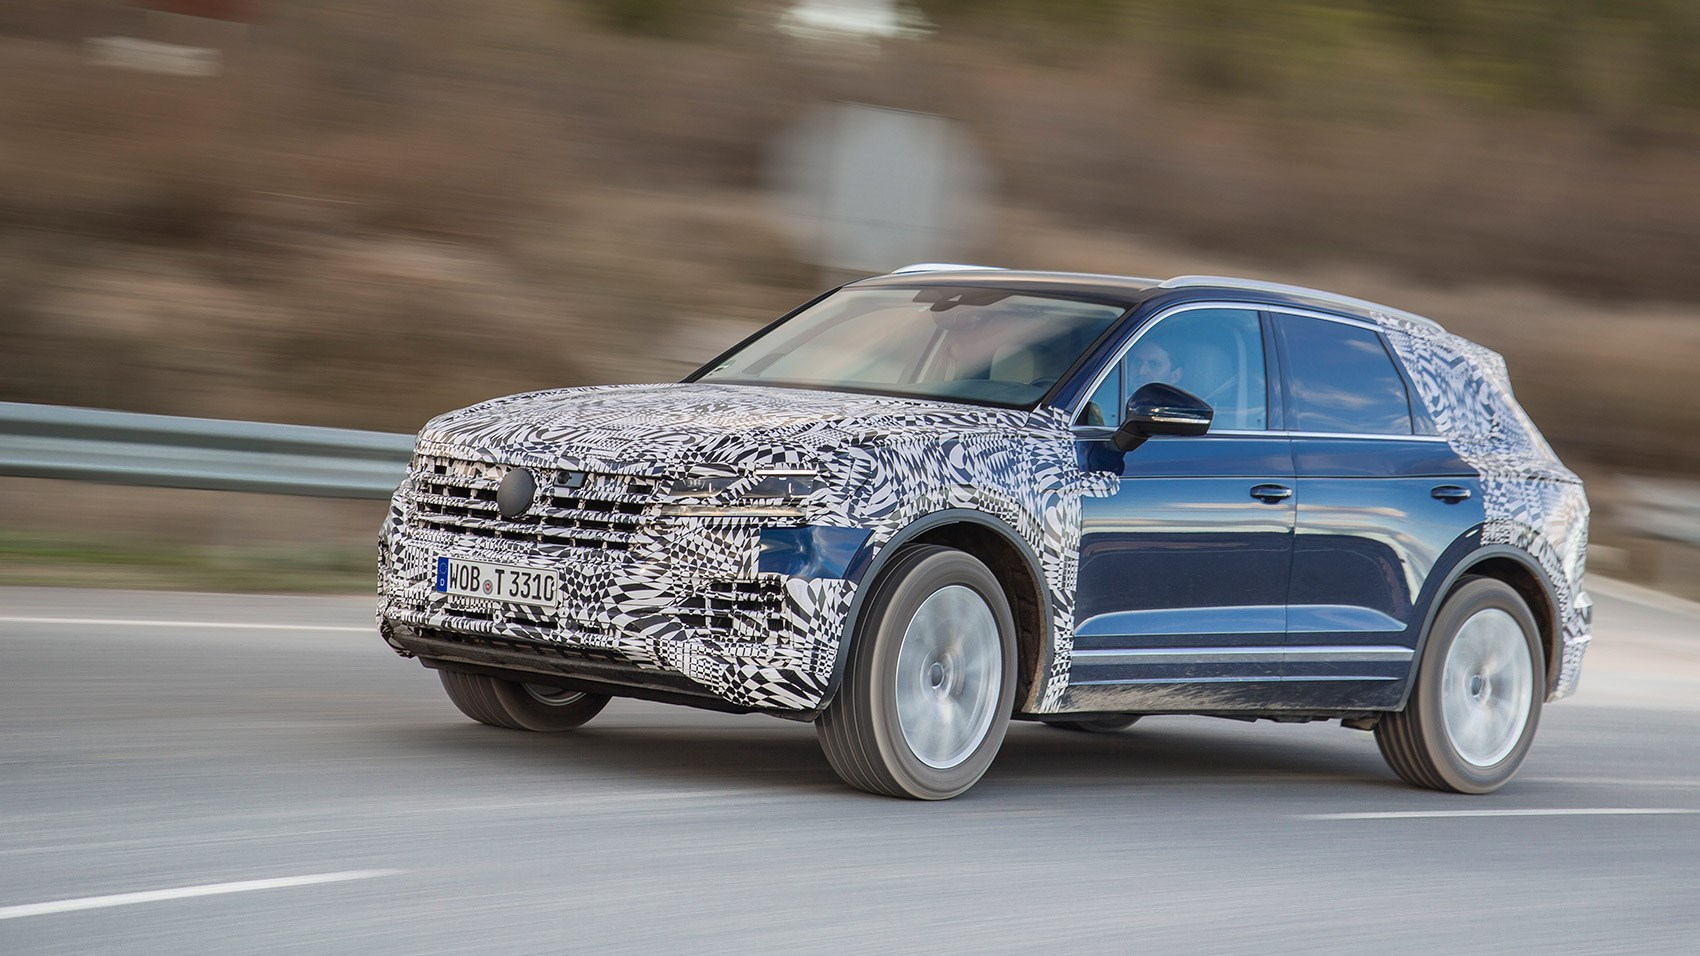 New VW Touareg Mk3: a prototype review by CAR magazine